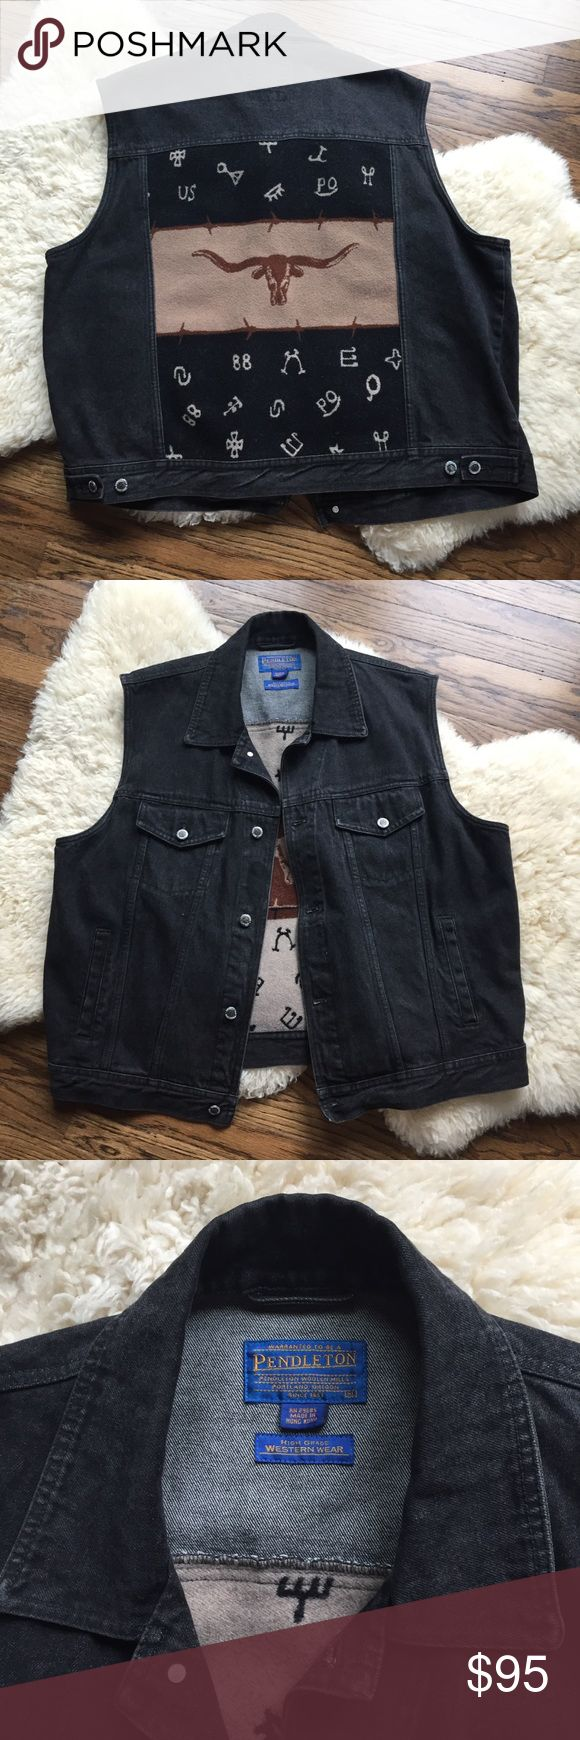 Pendleton Jean Vest with Back Panel Such an incredible piece! Pendleton is so well made and this in no exception. Black/dark gray jean vest with a Pendleton flannel panel across entire back. Perfect condition. Pendleton Jackets & Coats Vests